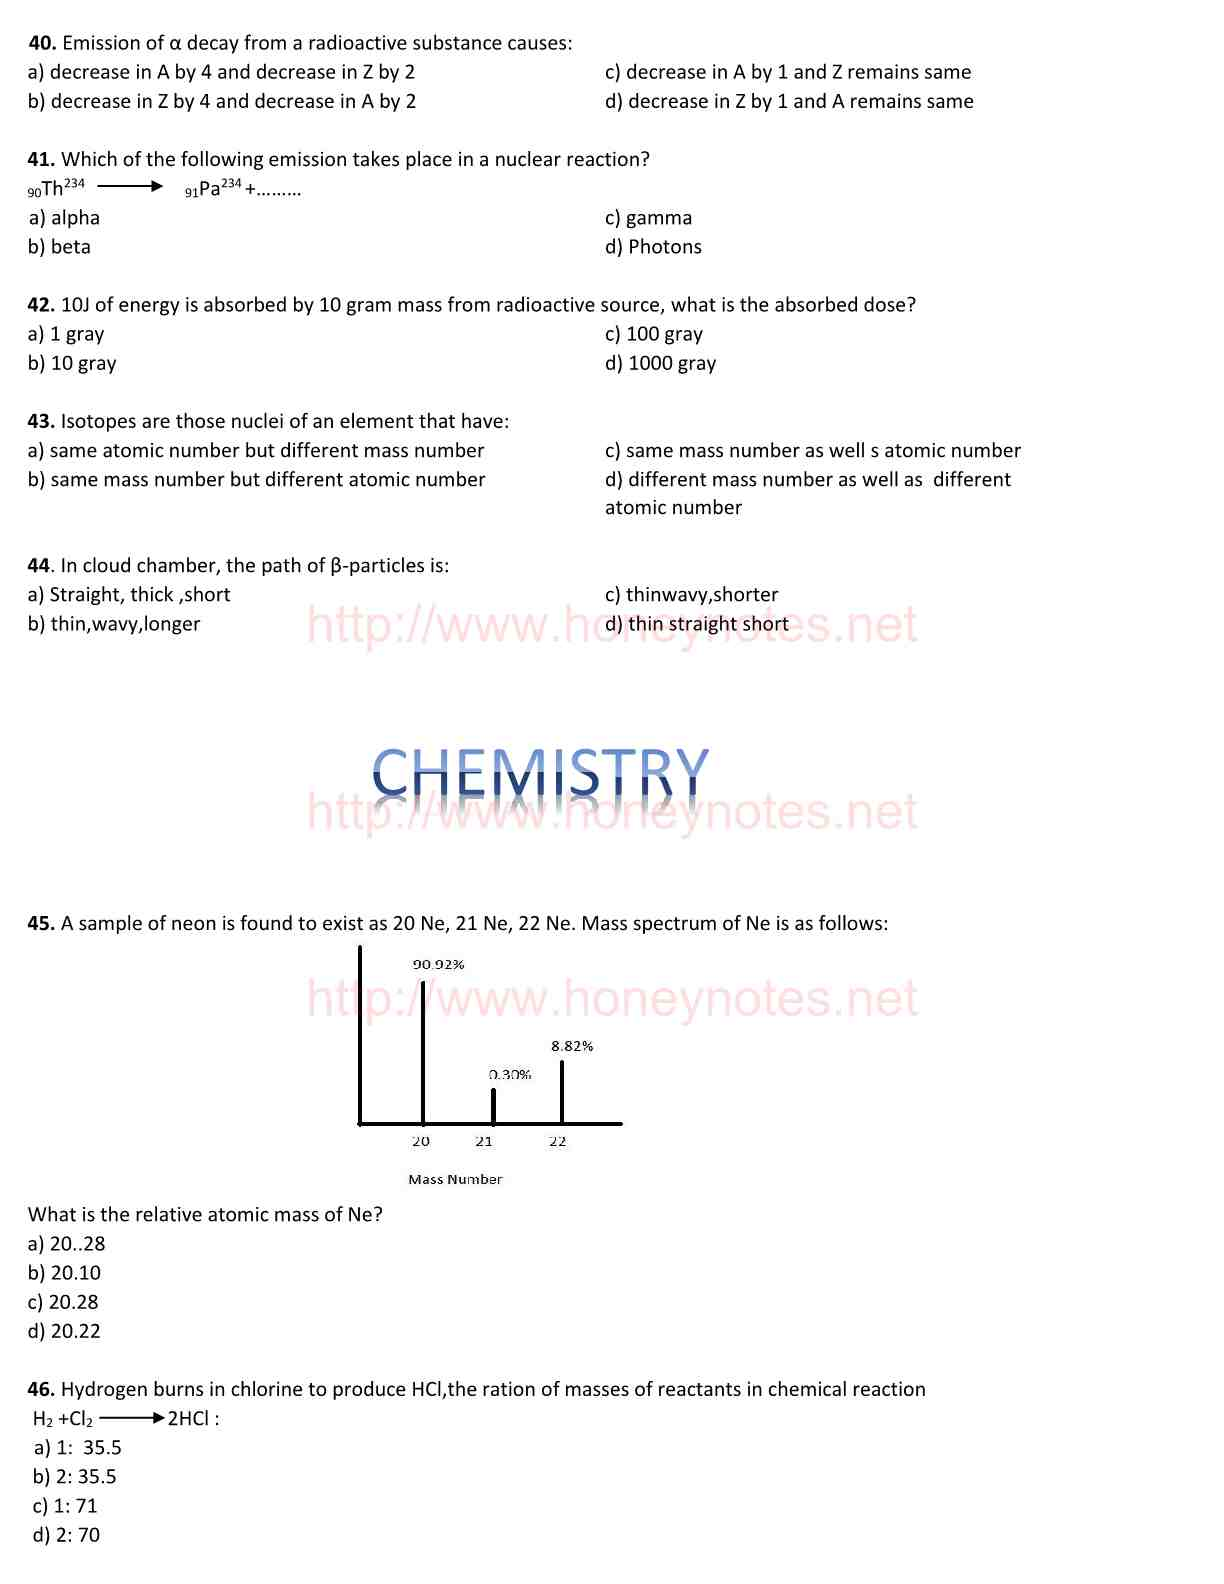 Entry test mcqs for medical, Chemistry entry test mcqs for engineering, entry test mcqs for medical 2017, Chemistry entry test papers, mcat Chemistry mcqs pdf, mcat mcqs of Chemistry 2012, mcat mcqs chapter wise (Chemistry), mcat mcqs 2017, entry test mcqs of Chemistry, entry test mcqs Chemistry 2013, entry test mcqs for engineering 2017, entry test mcqs for medical 2016, entry test mcqs for medical past papers, biology mcqs for entry test with answers, mcat mcqs biology with answers, mcat mcqs Chemistry, mcat Chemistry mcqs online test, mcat mcqs Chemistry, entry test mcqs for medical 2016, online entry test preparation mcat.